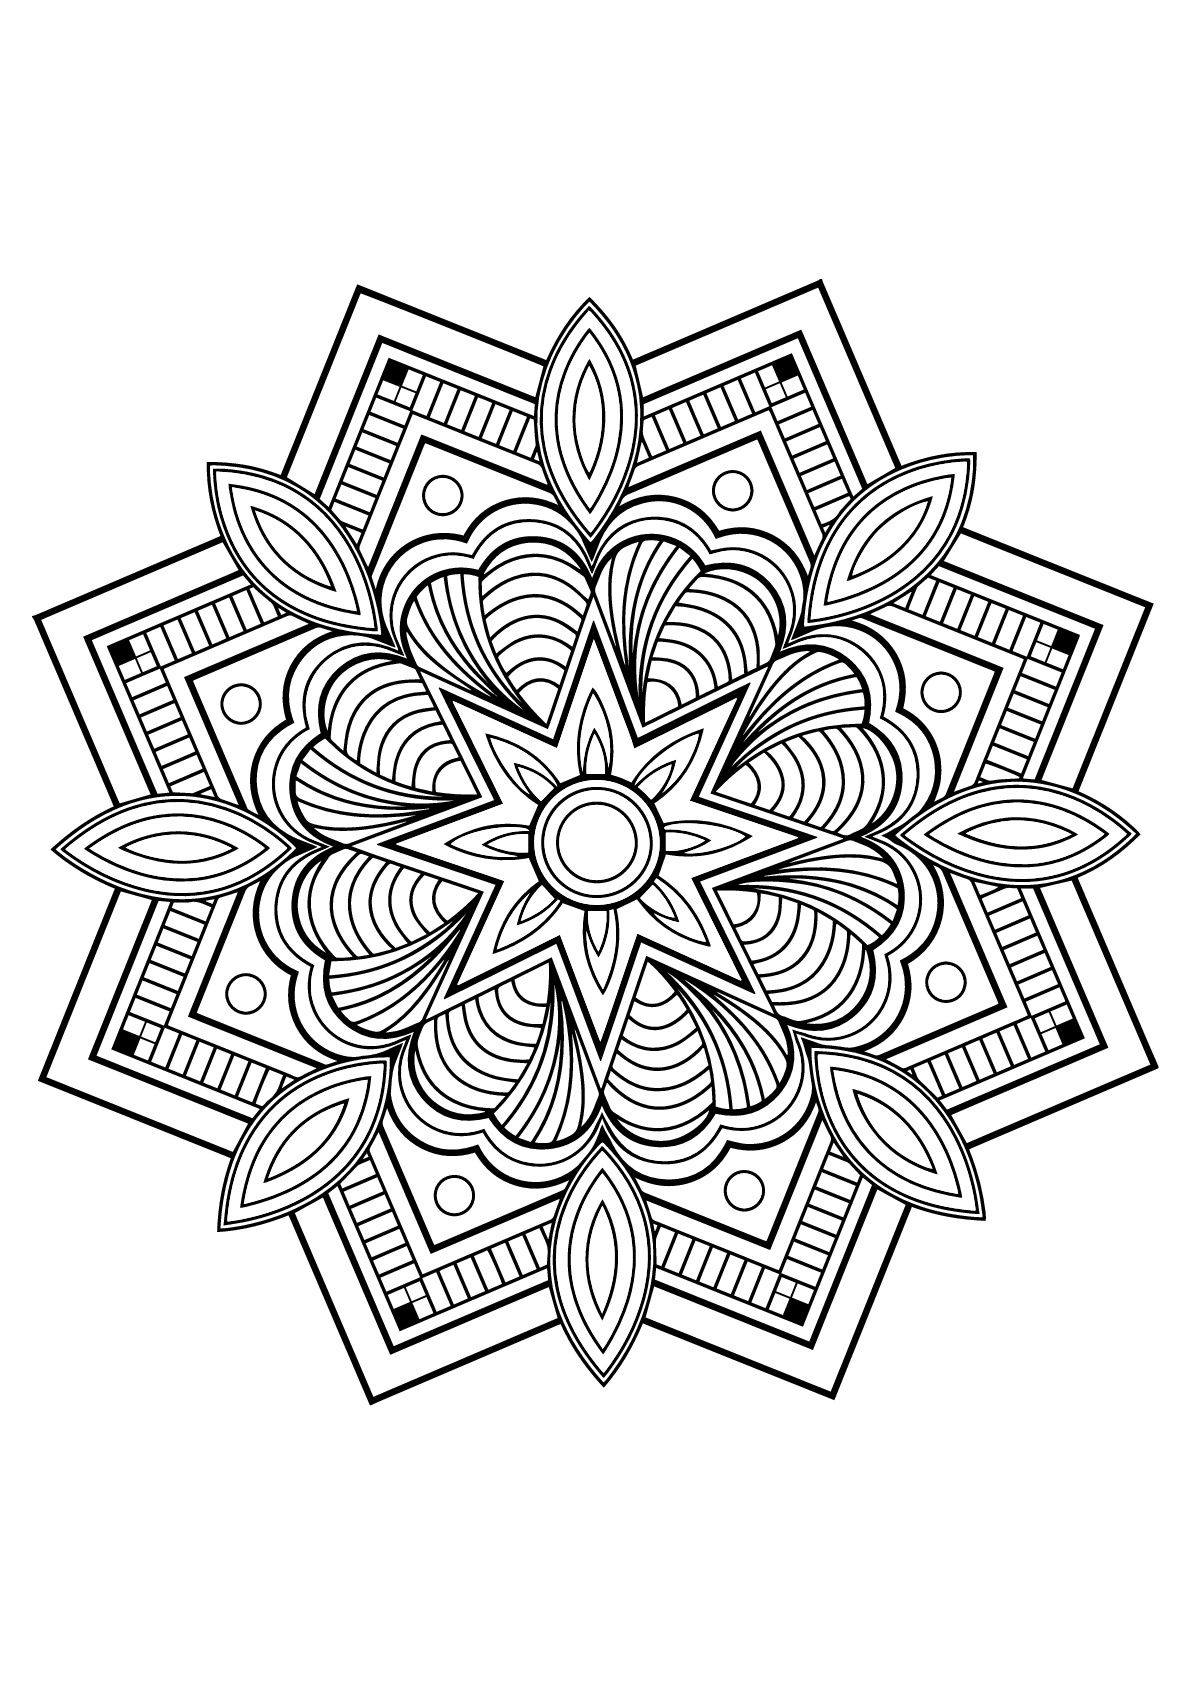 Mandala from free book for 10 | Mandalas - JustColor : Discover all ...